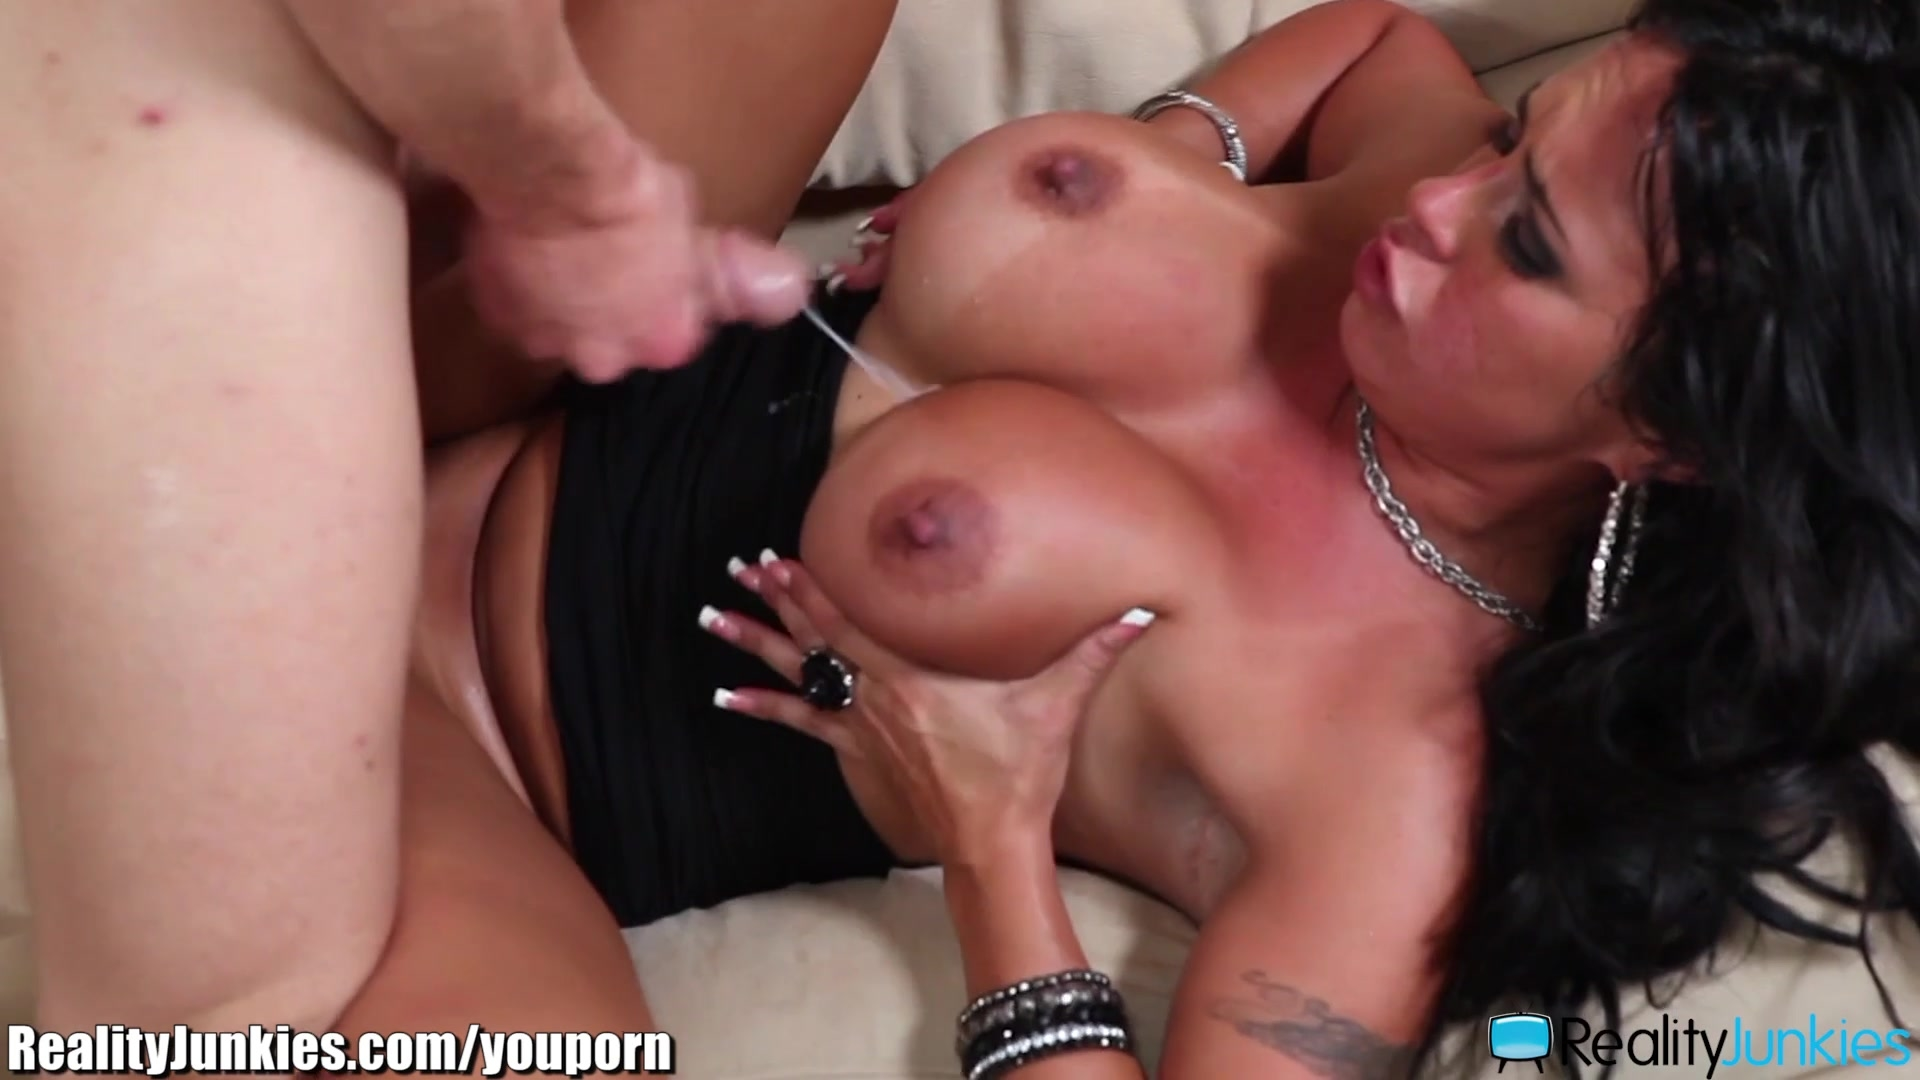 Wife and girl threesome